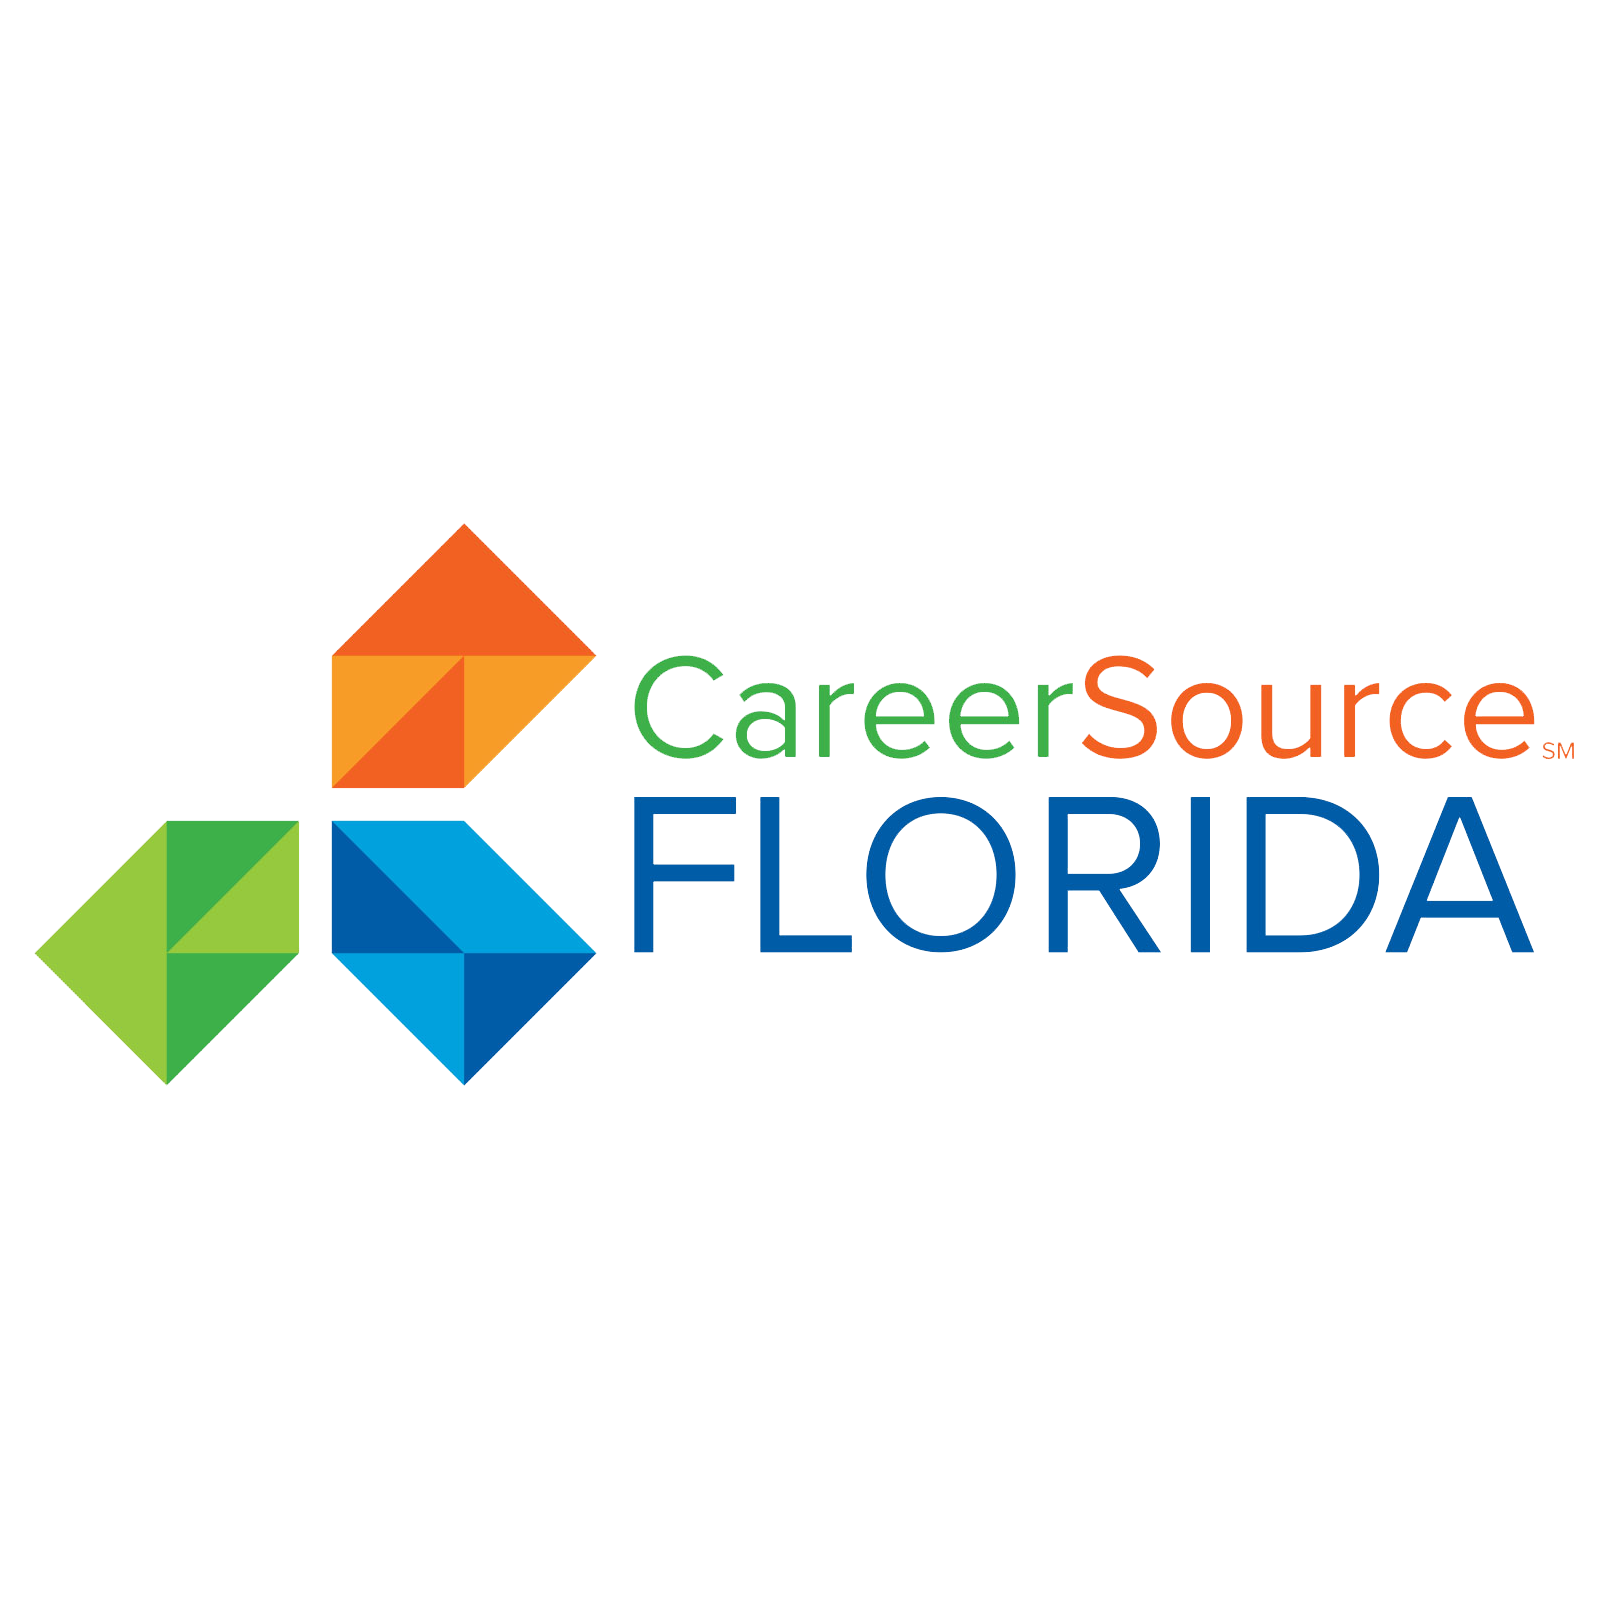 Career Source Florida logo